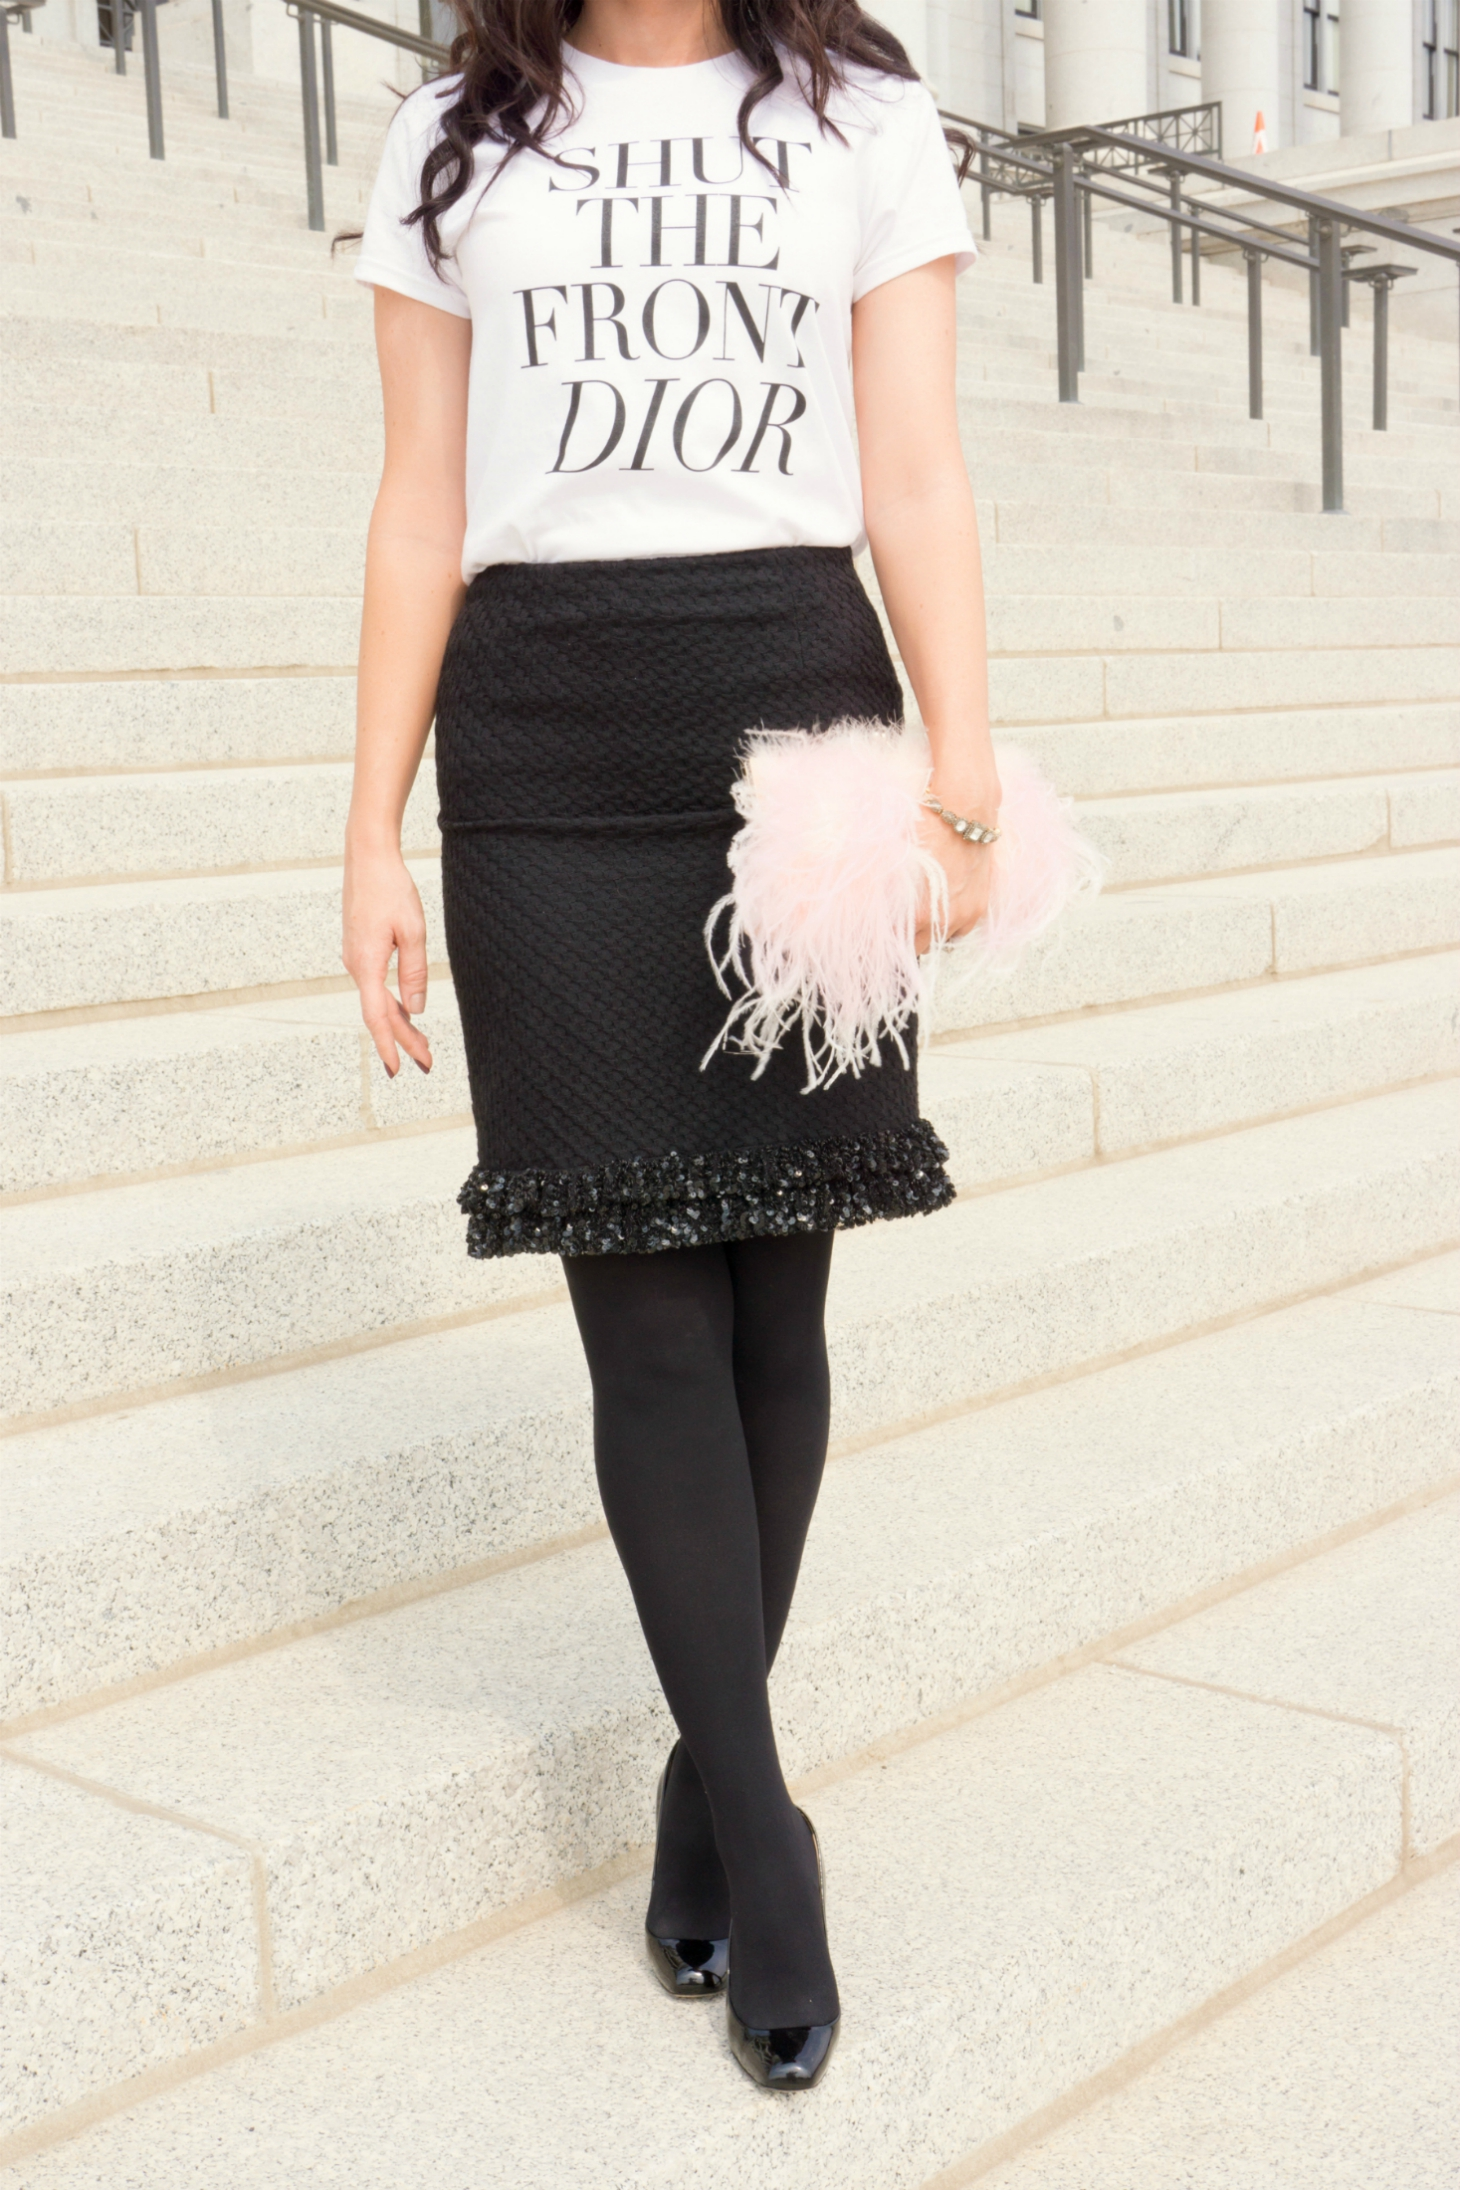 Shut the front Dior fall outfit inspiration